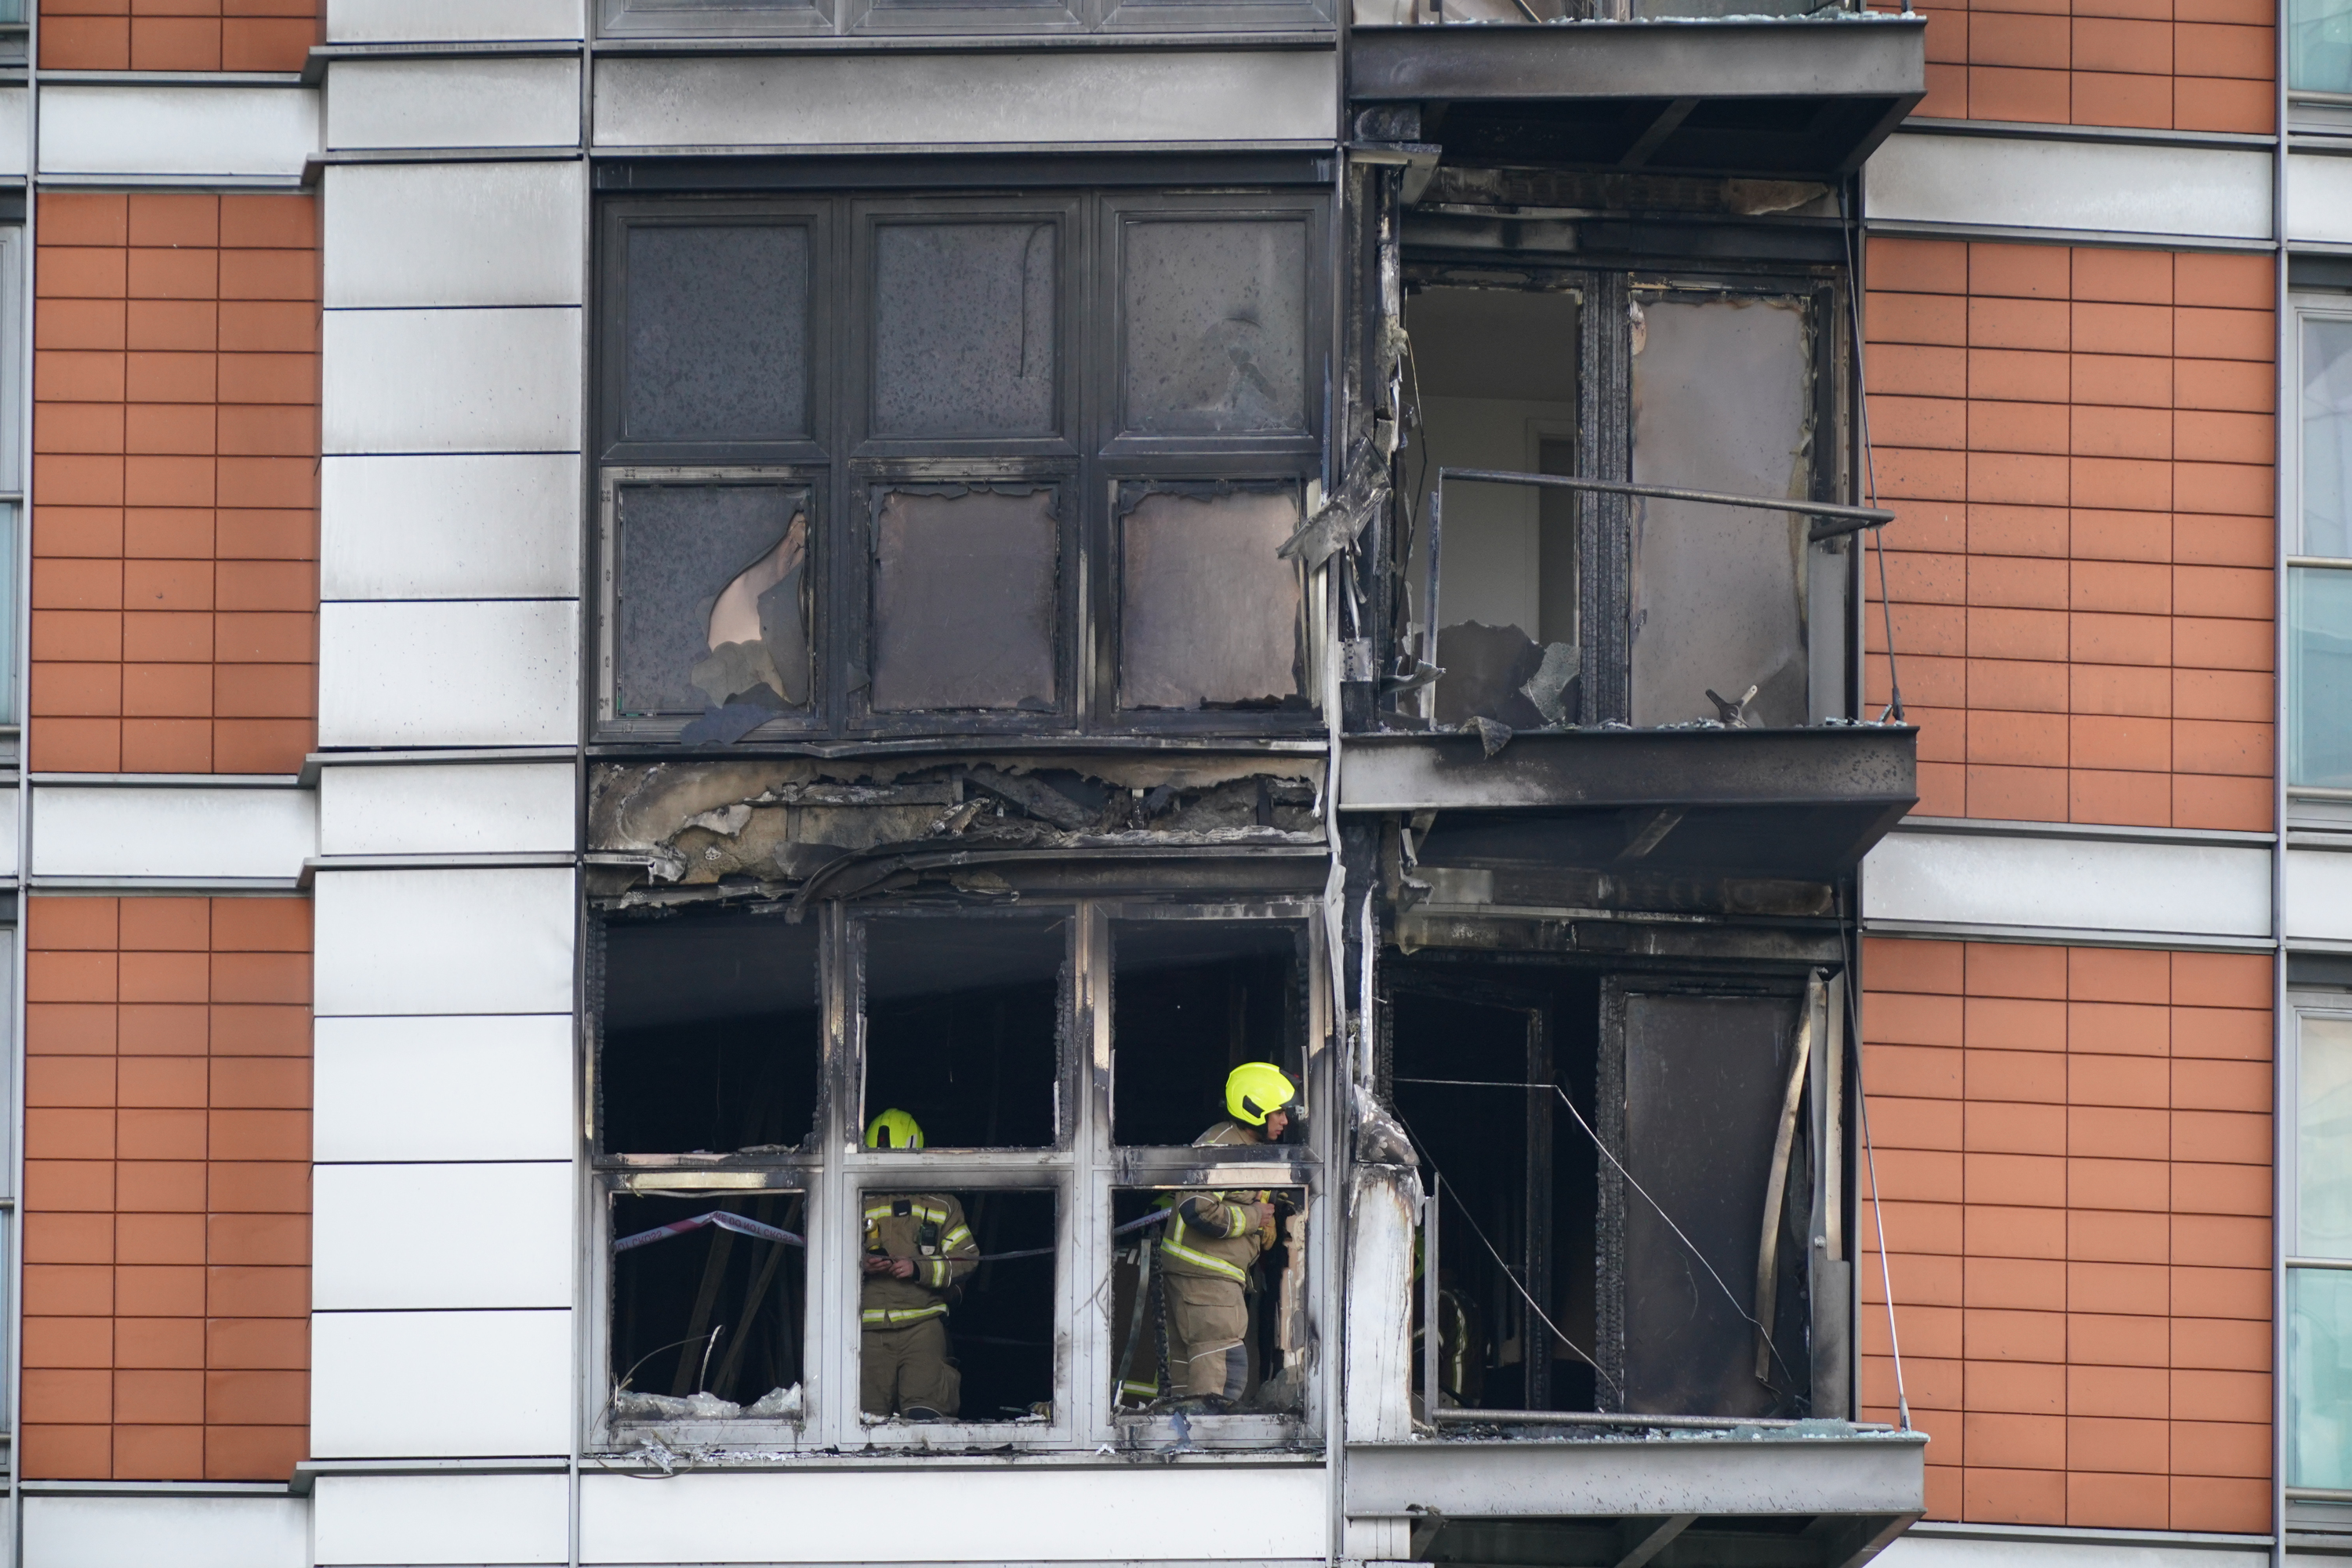 <p>Firefighters inspect damage to a 19-storey tower block in New Providence Wharf in London, where the London Fire Brigade (LFB) was called to on Friday morning to reports of a fire and more than 100 firefighters are tackling a blaze that has ripped through the block, believed to be covered in cladding, in east London. Picture date: Friday May 7, 2021. See PA story FIRE CanaryWharf. Photo credit should read: Yui Mok/PA</p>